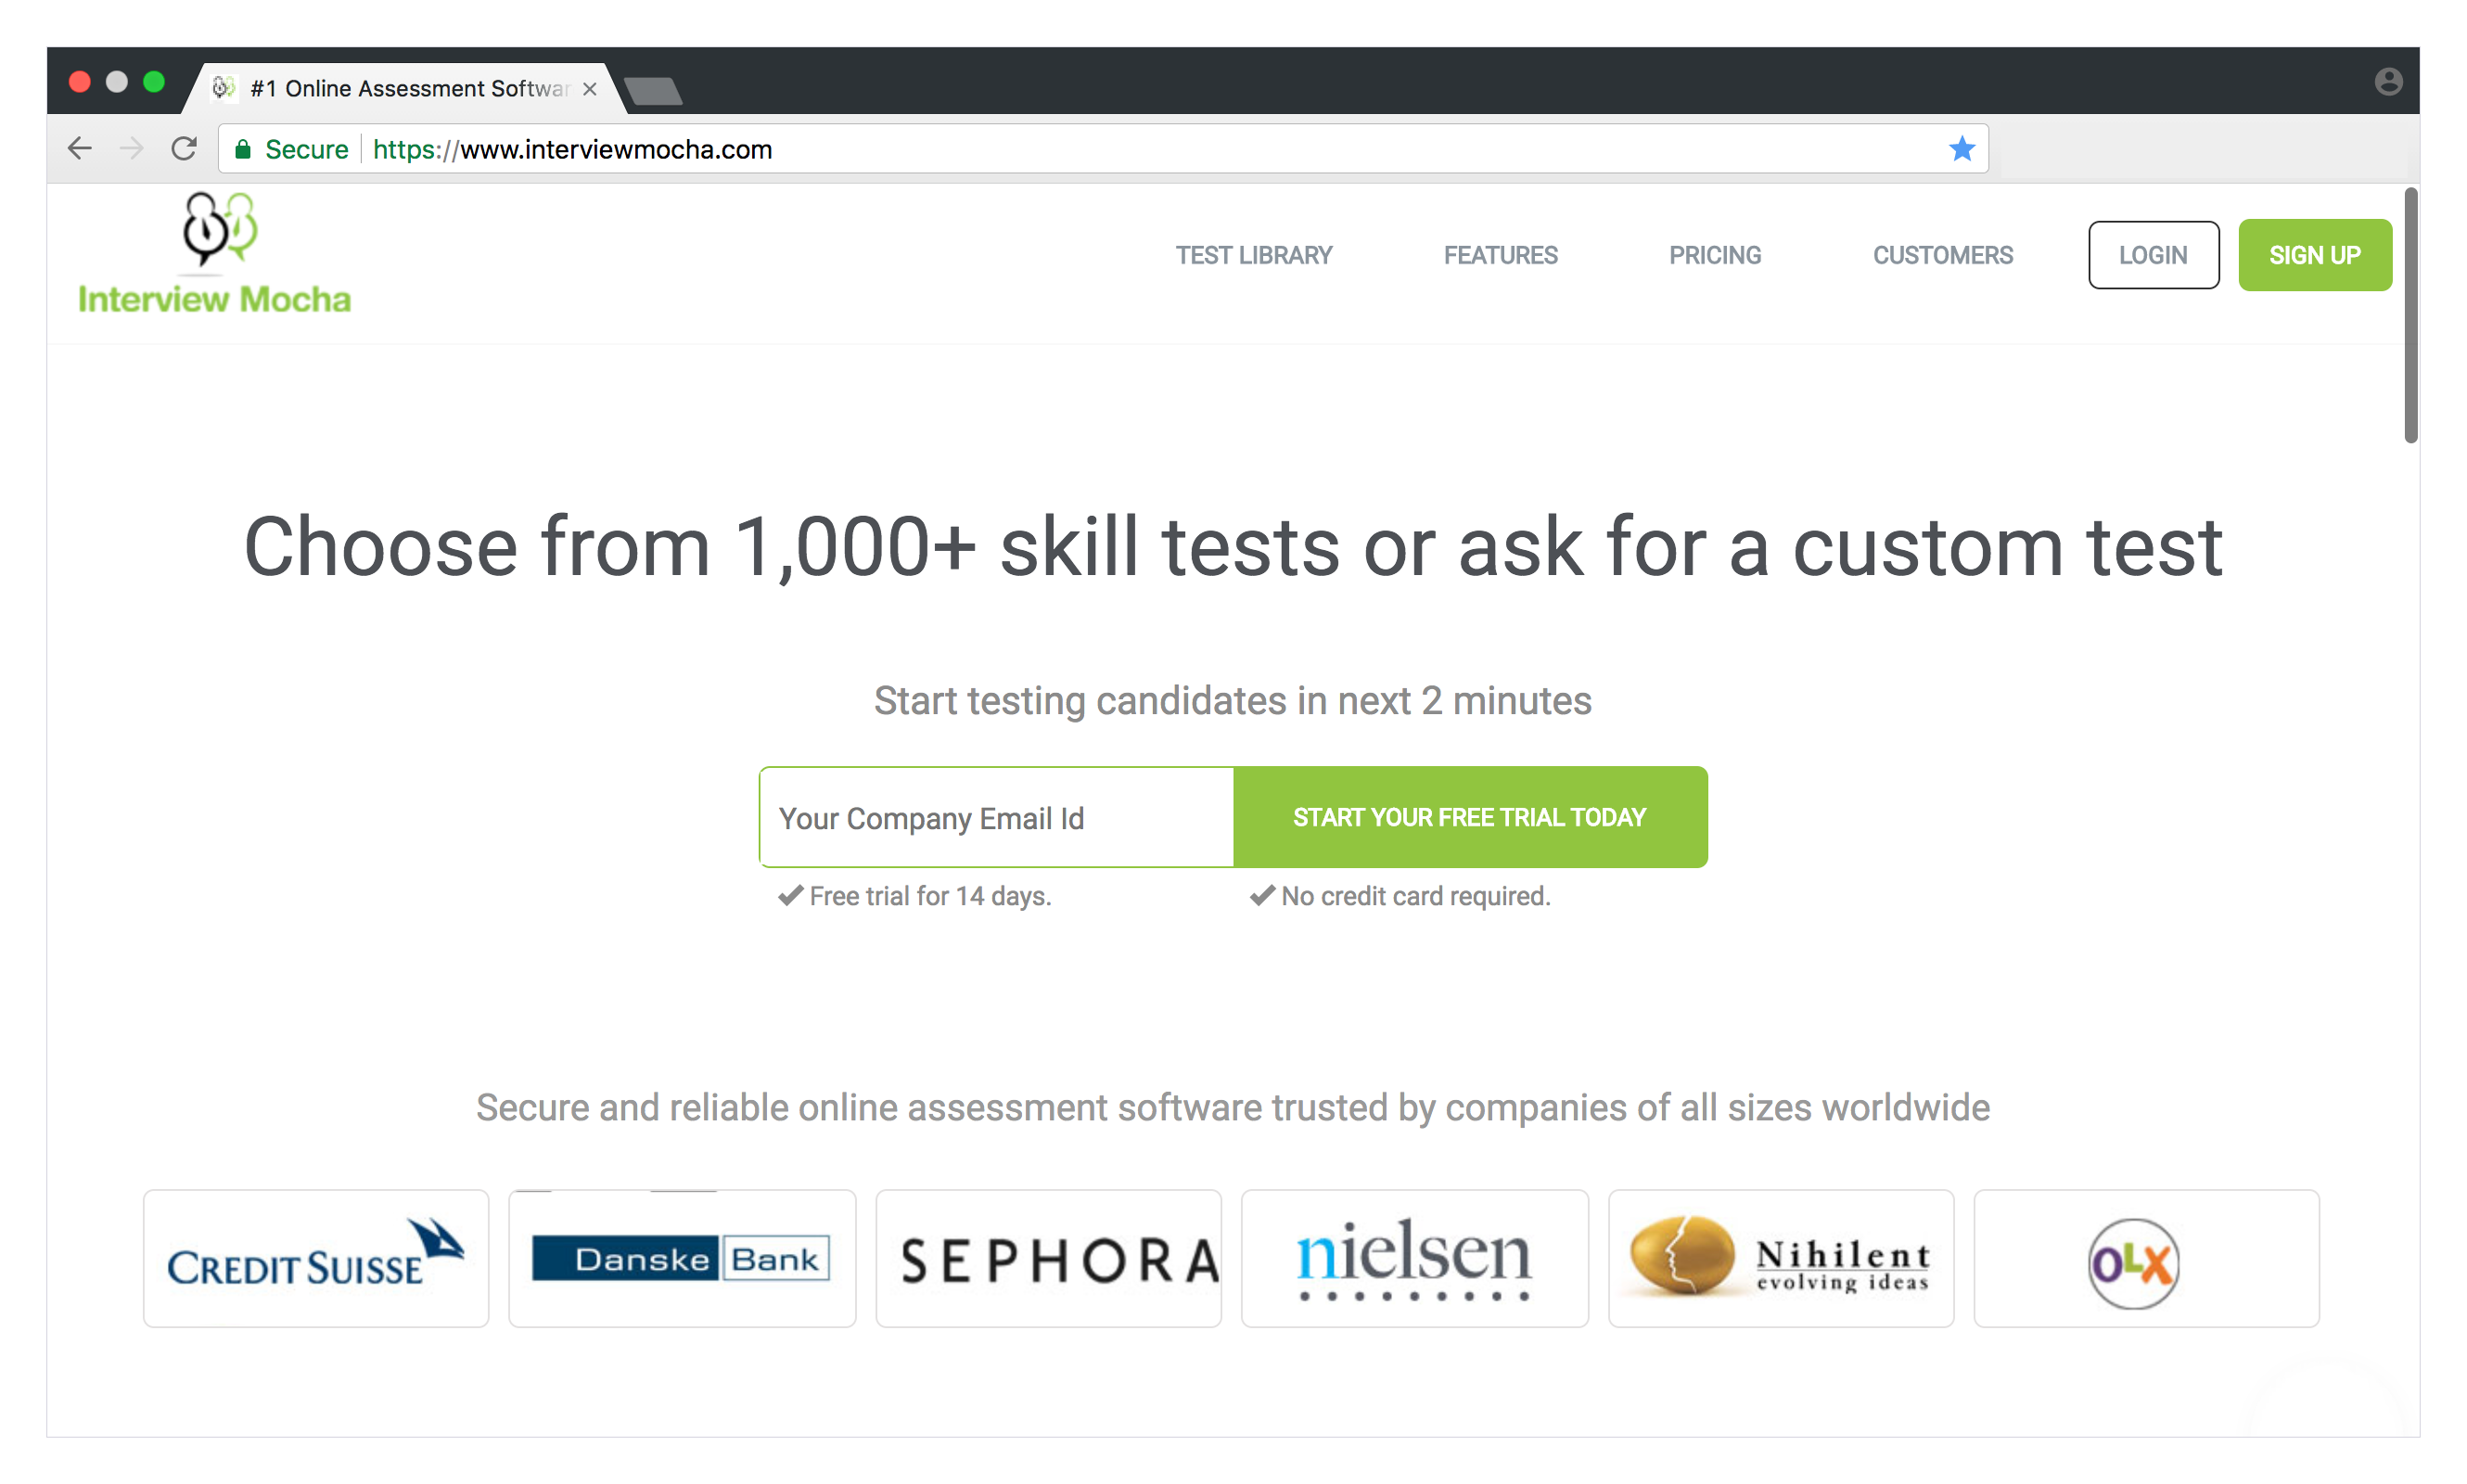 INTERVIEW MOCHA. What Does This Tool Offer? InterviewMocha Is A Skills  Testing Platform With Over 1000 Skills Tests Templates